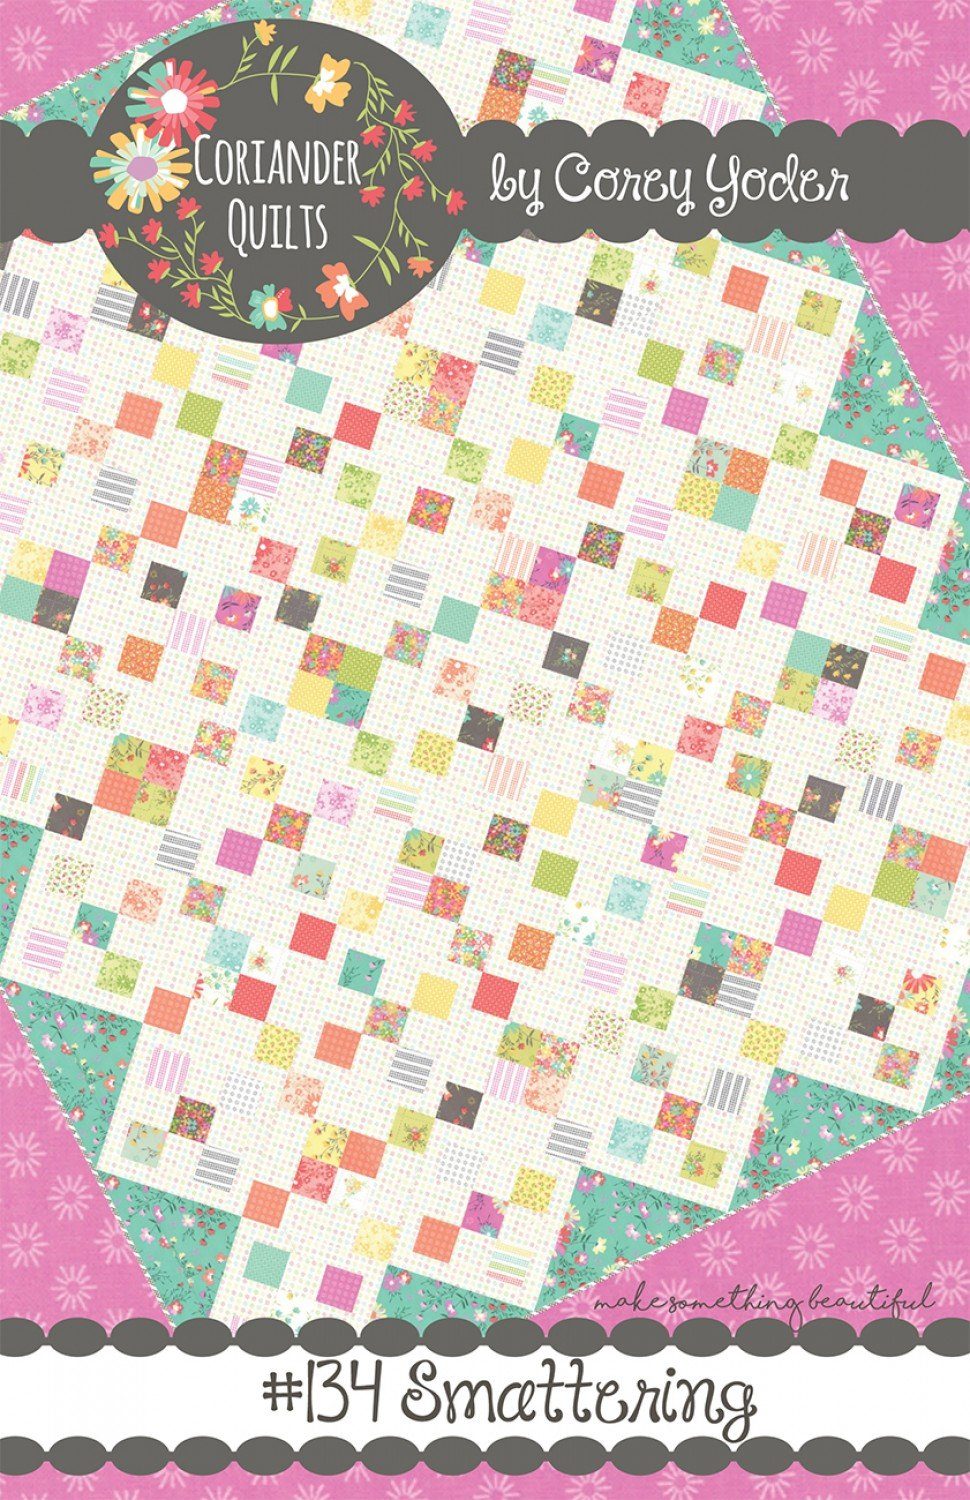 Smattering by Coriander Quilts